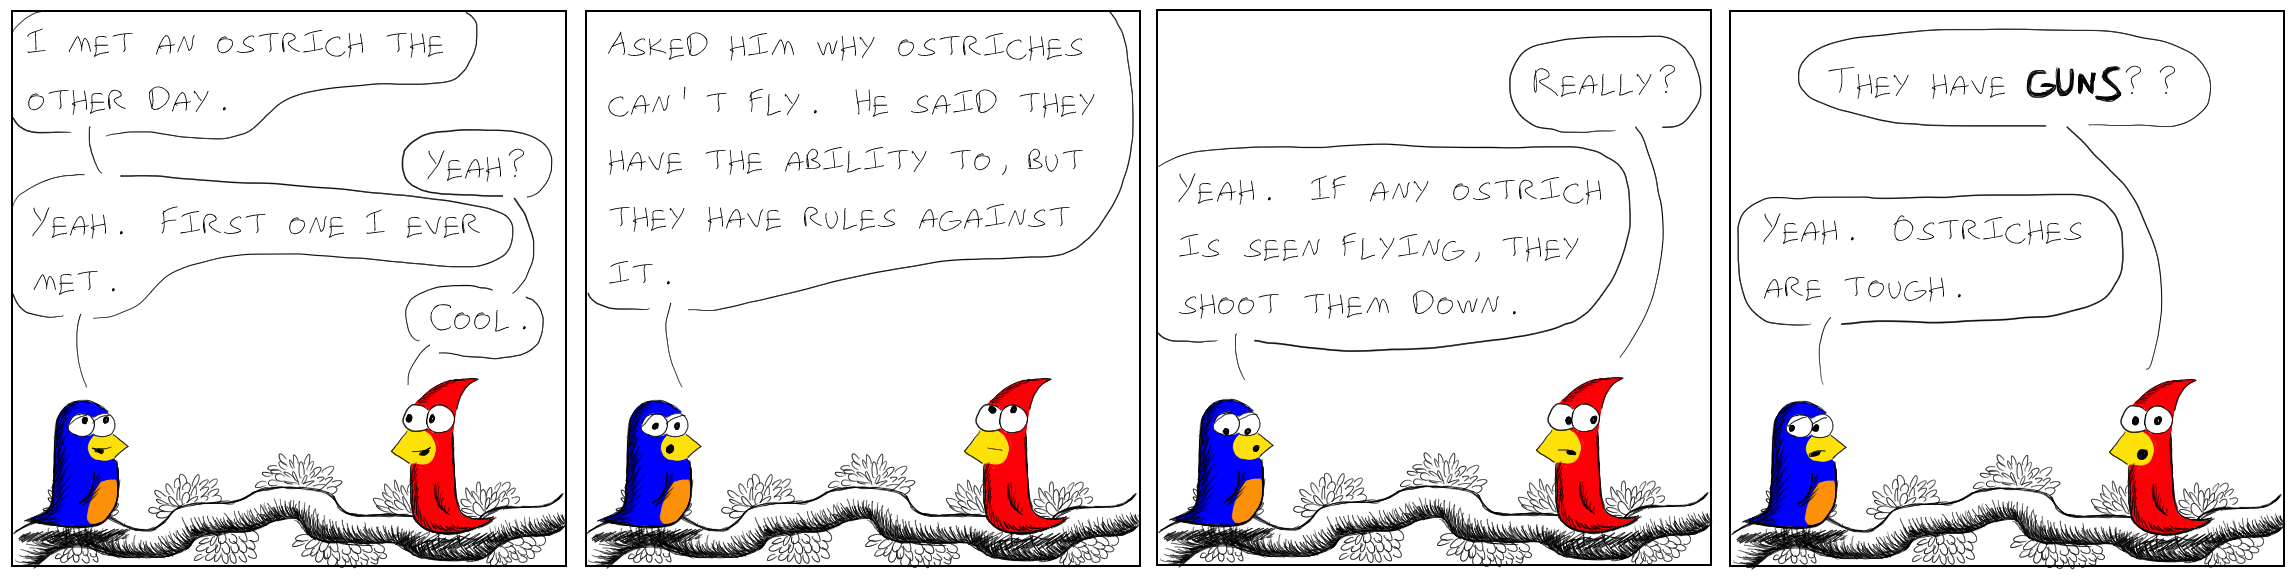 /assets/images/comics/20150428102156199624/266ostriches.png